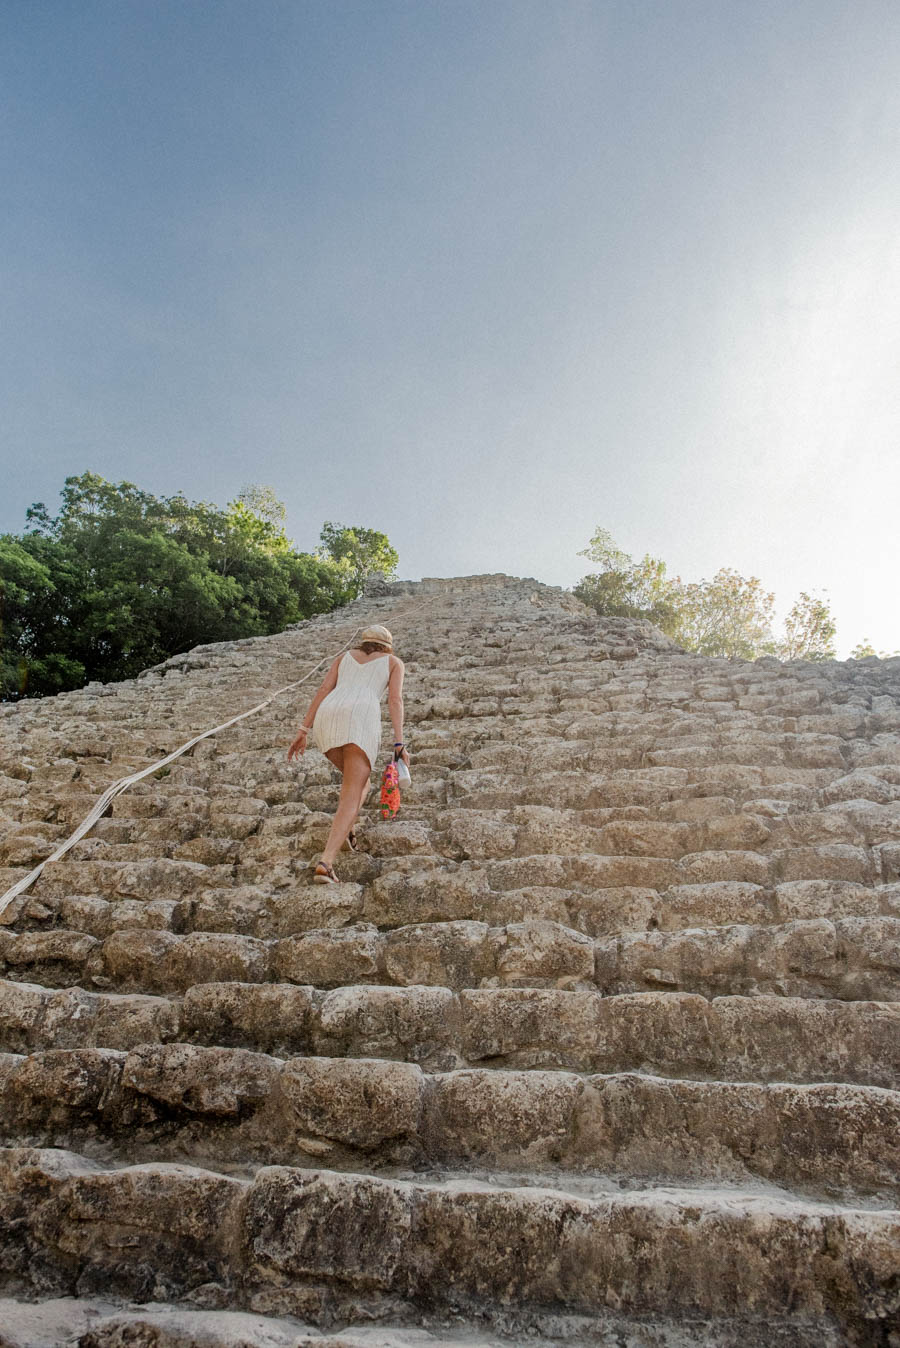 Coba has the only mayan Pyramid that you can climb in Mexico. Make sure you wear appropriate footwear. There are a lot of stairs.